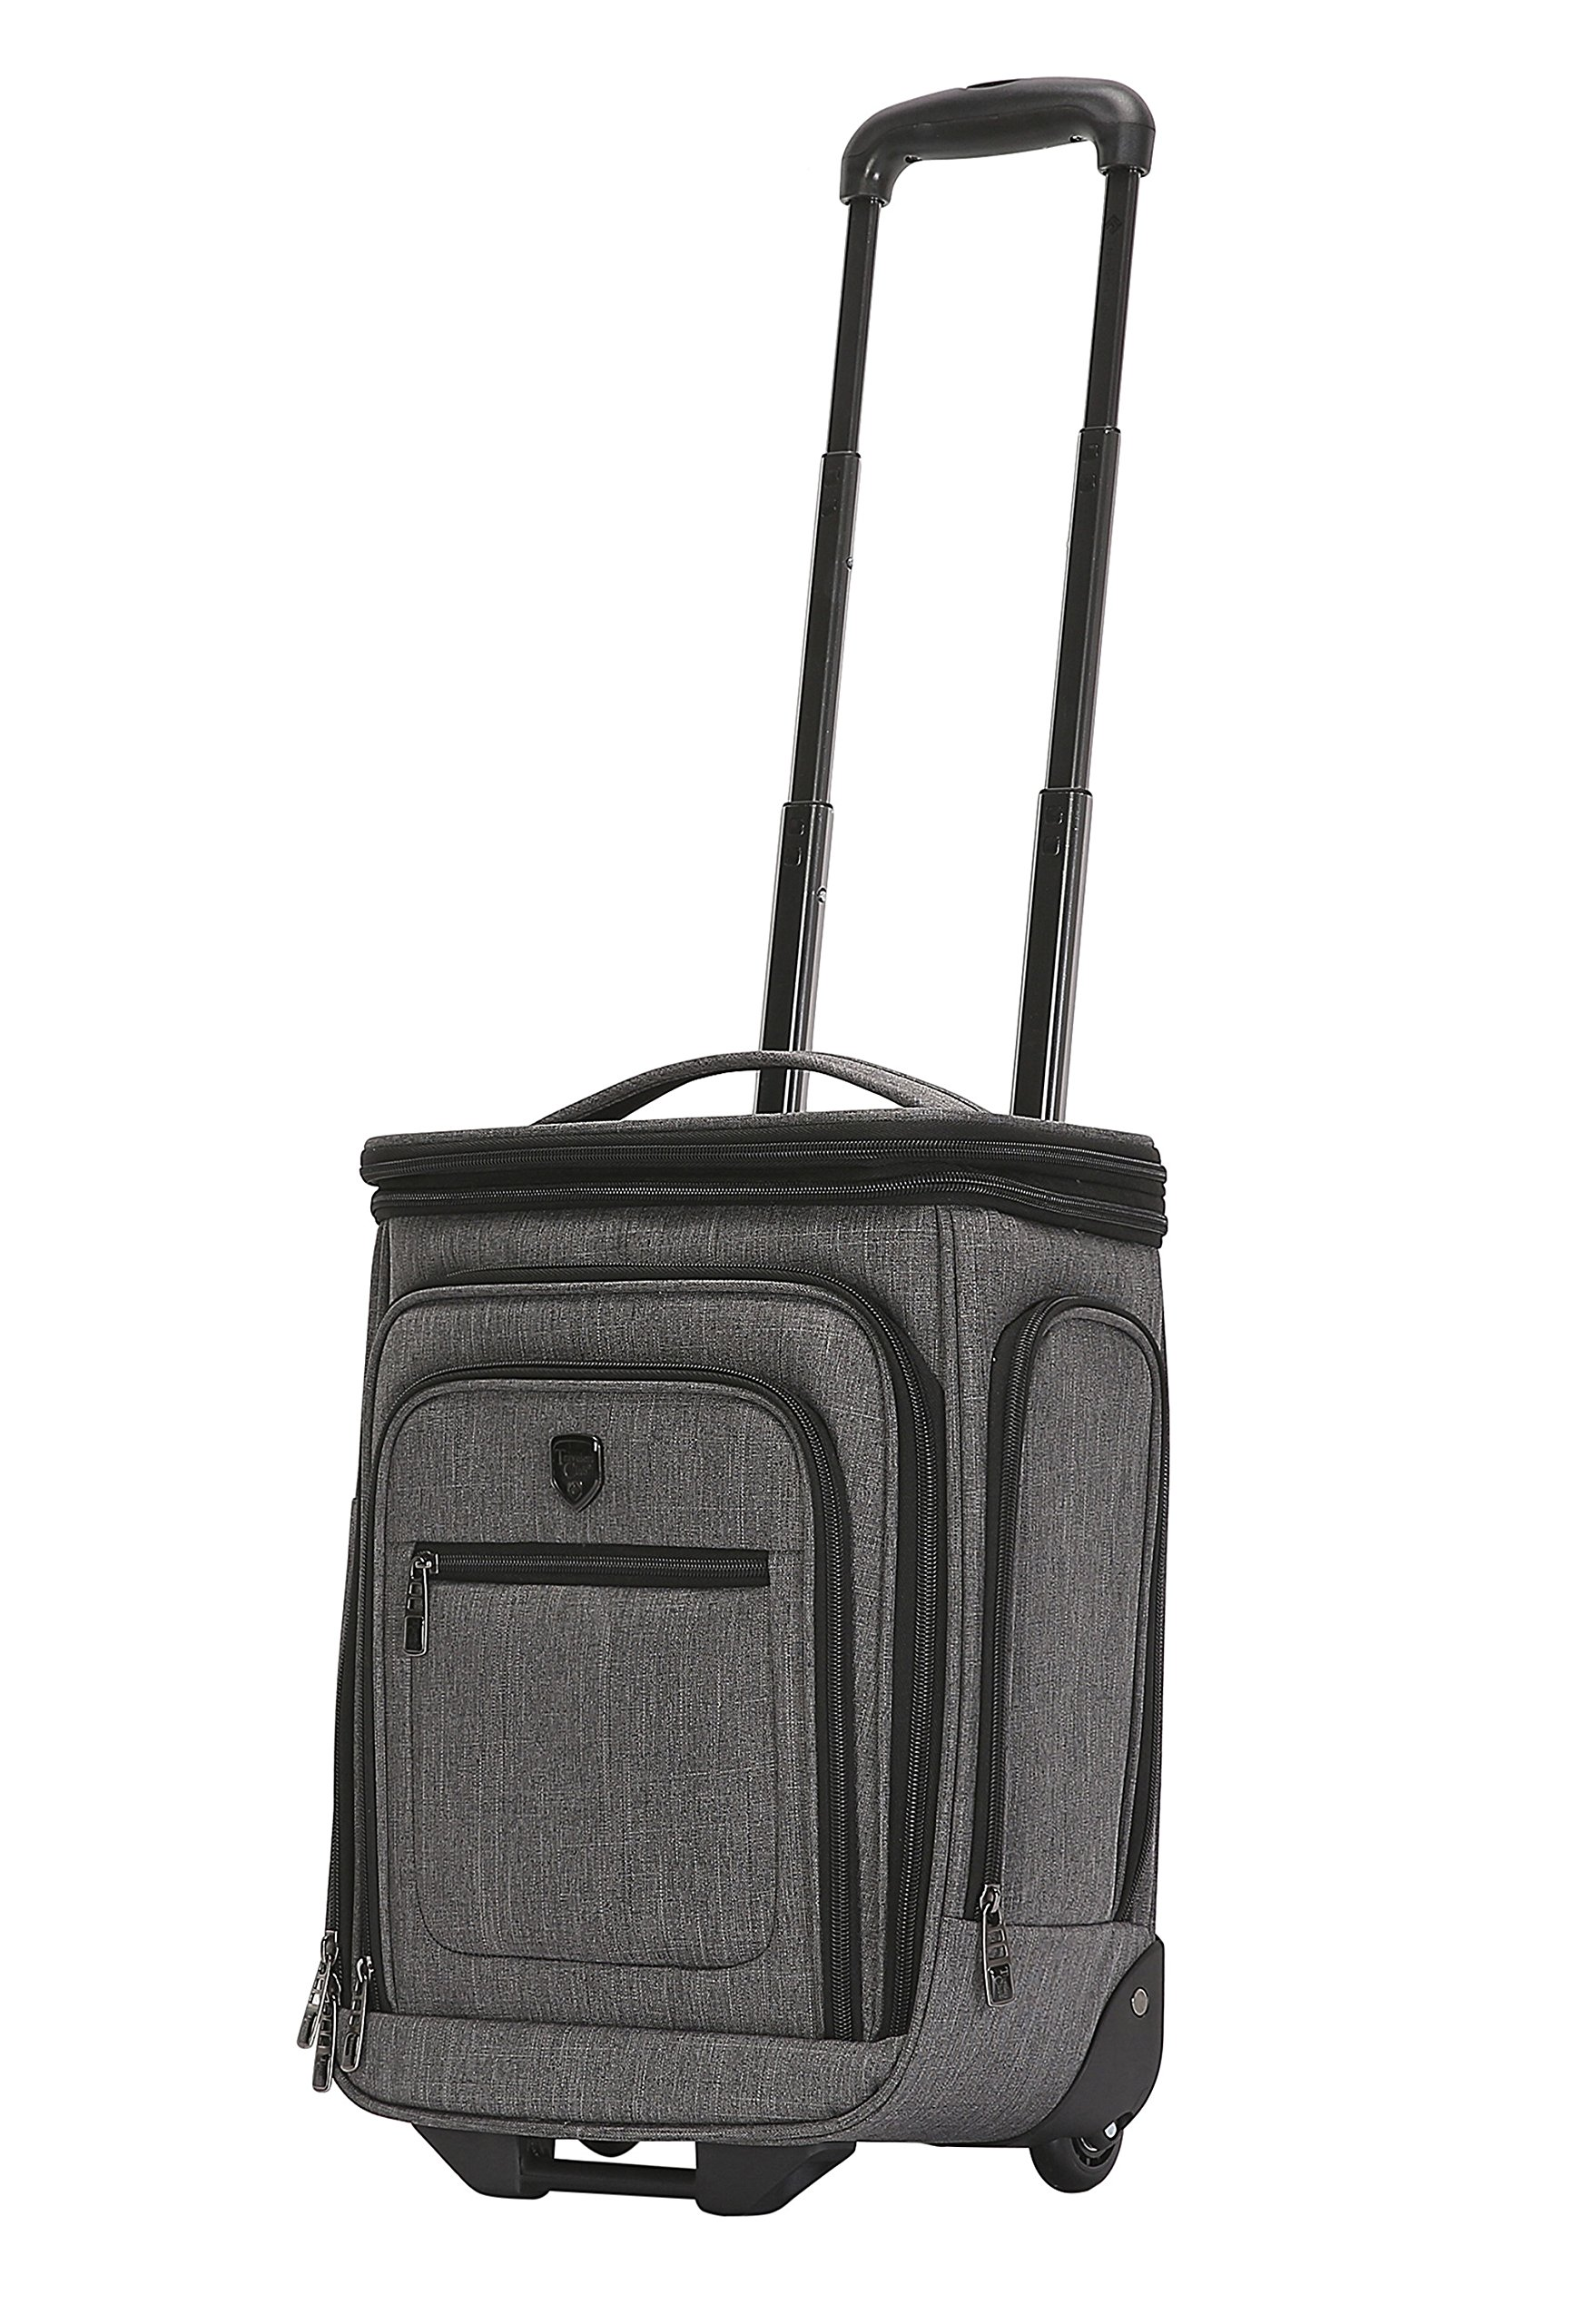 Travelers Club Luggage 17'' Top Expandable Underseater W/Side USB Port Connector, Dark Gray Suitcase, Carry by Travelers Club